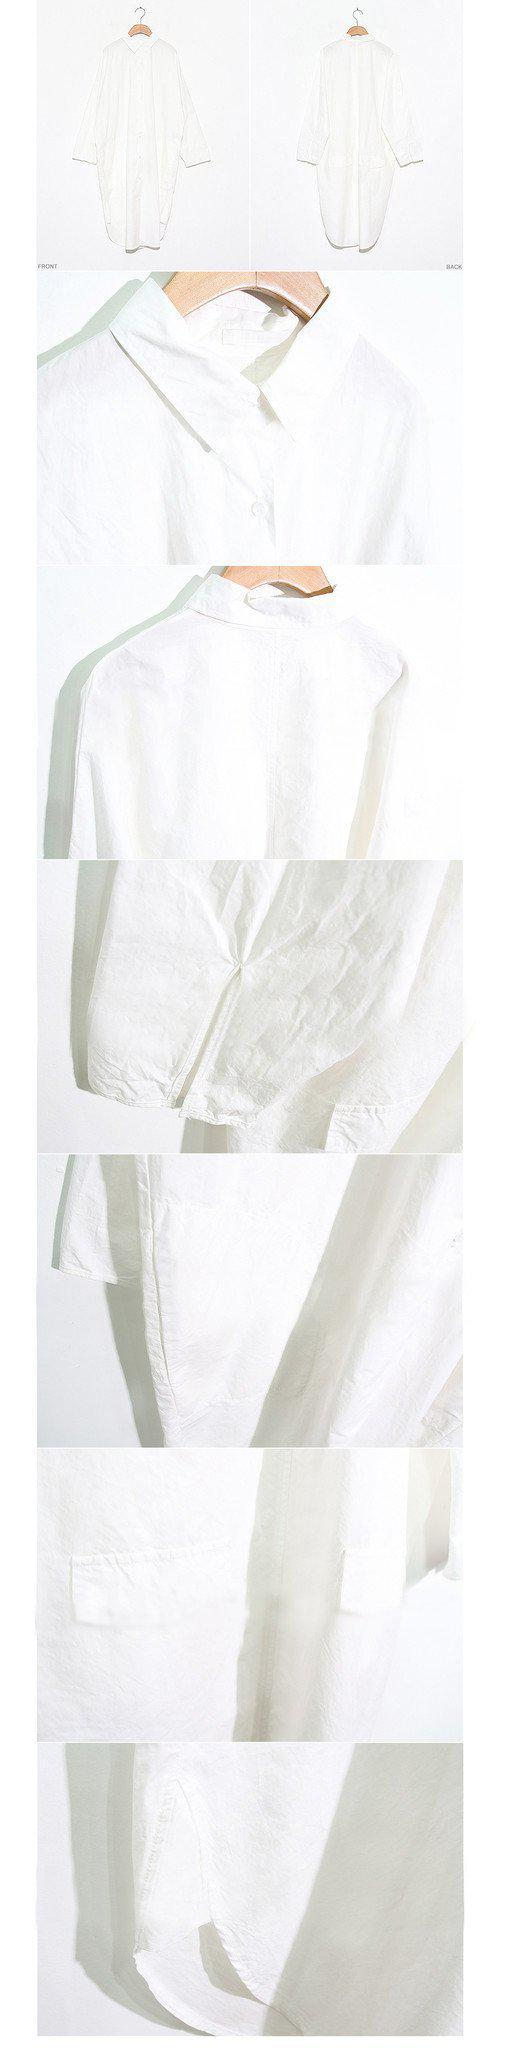 Spring Women Shirts Star Model Is Very Small Buttoned Pockets Garments Blouse Shirt White 3263-Blouse-SheSimplyShops